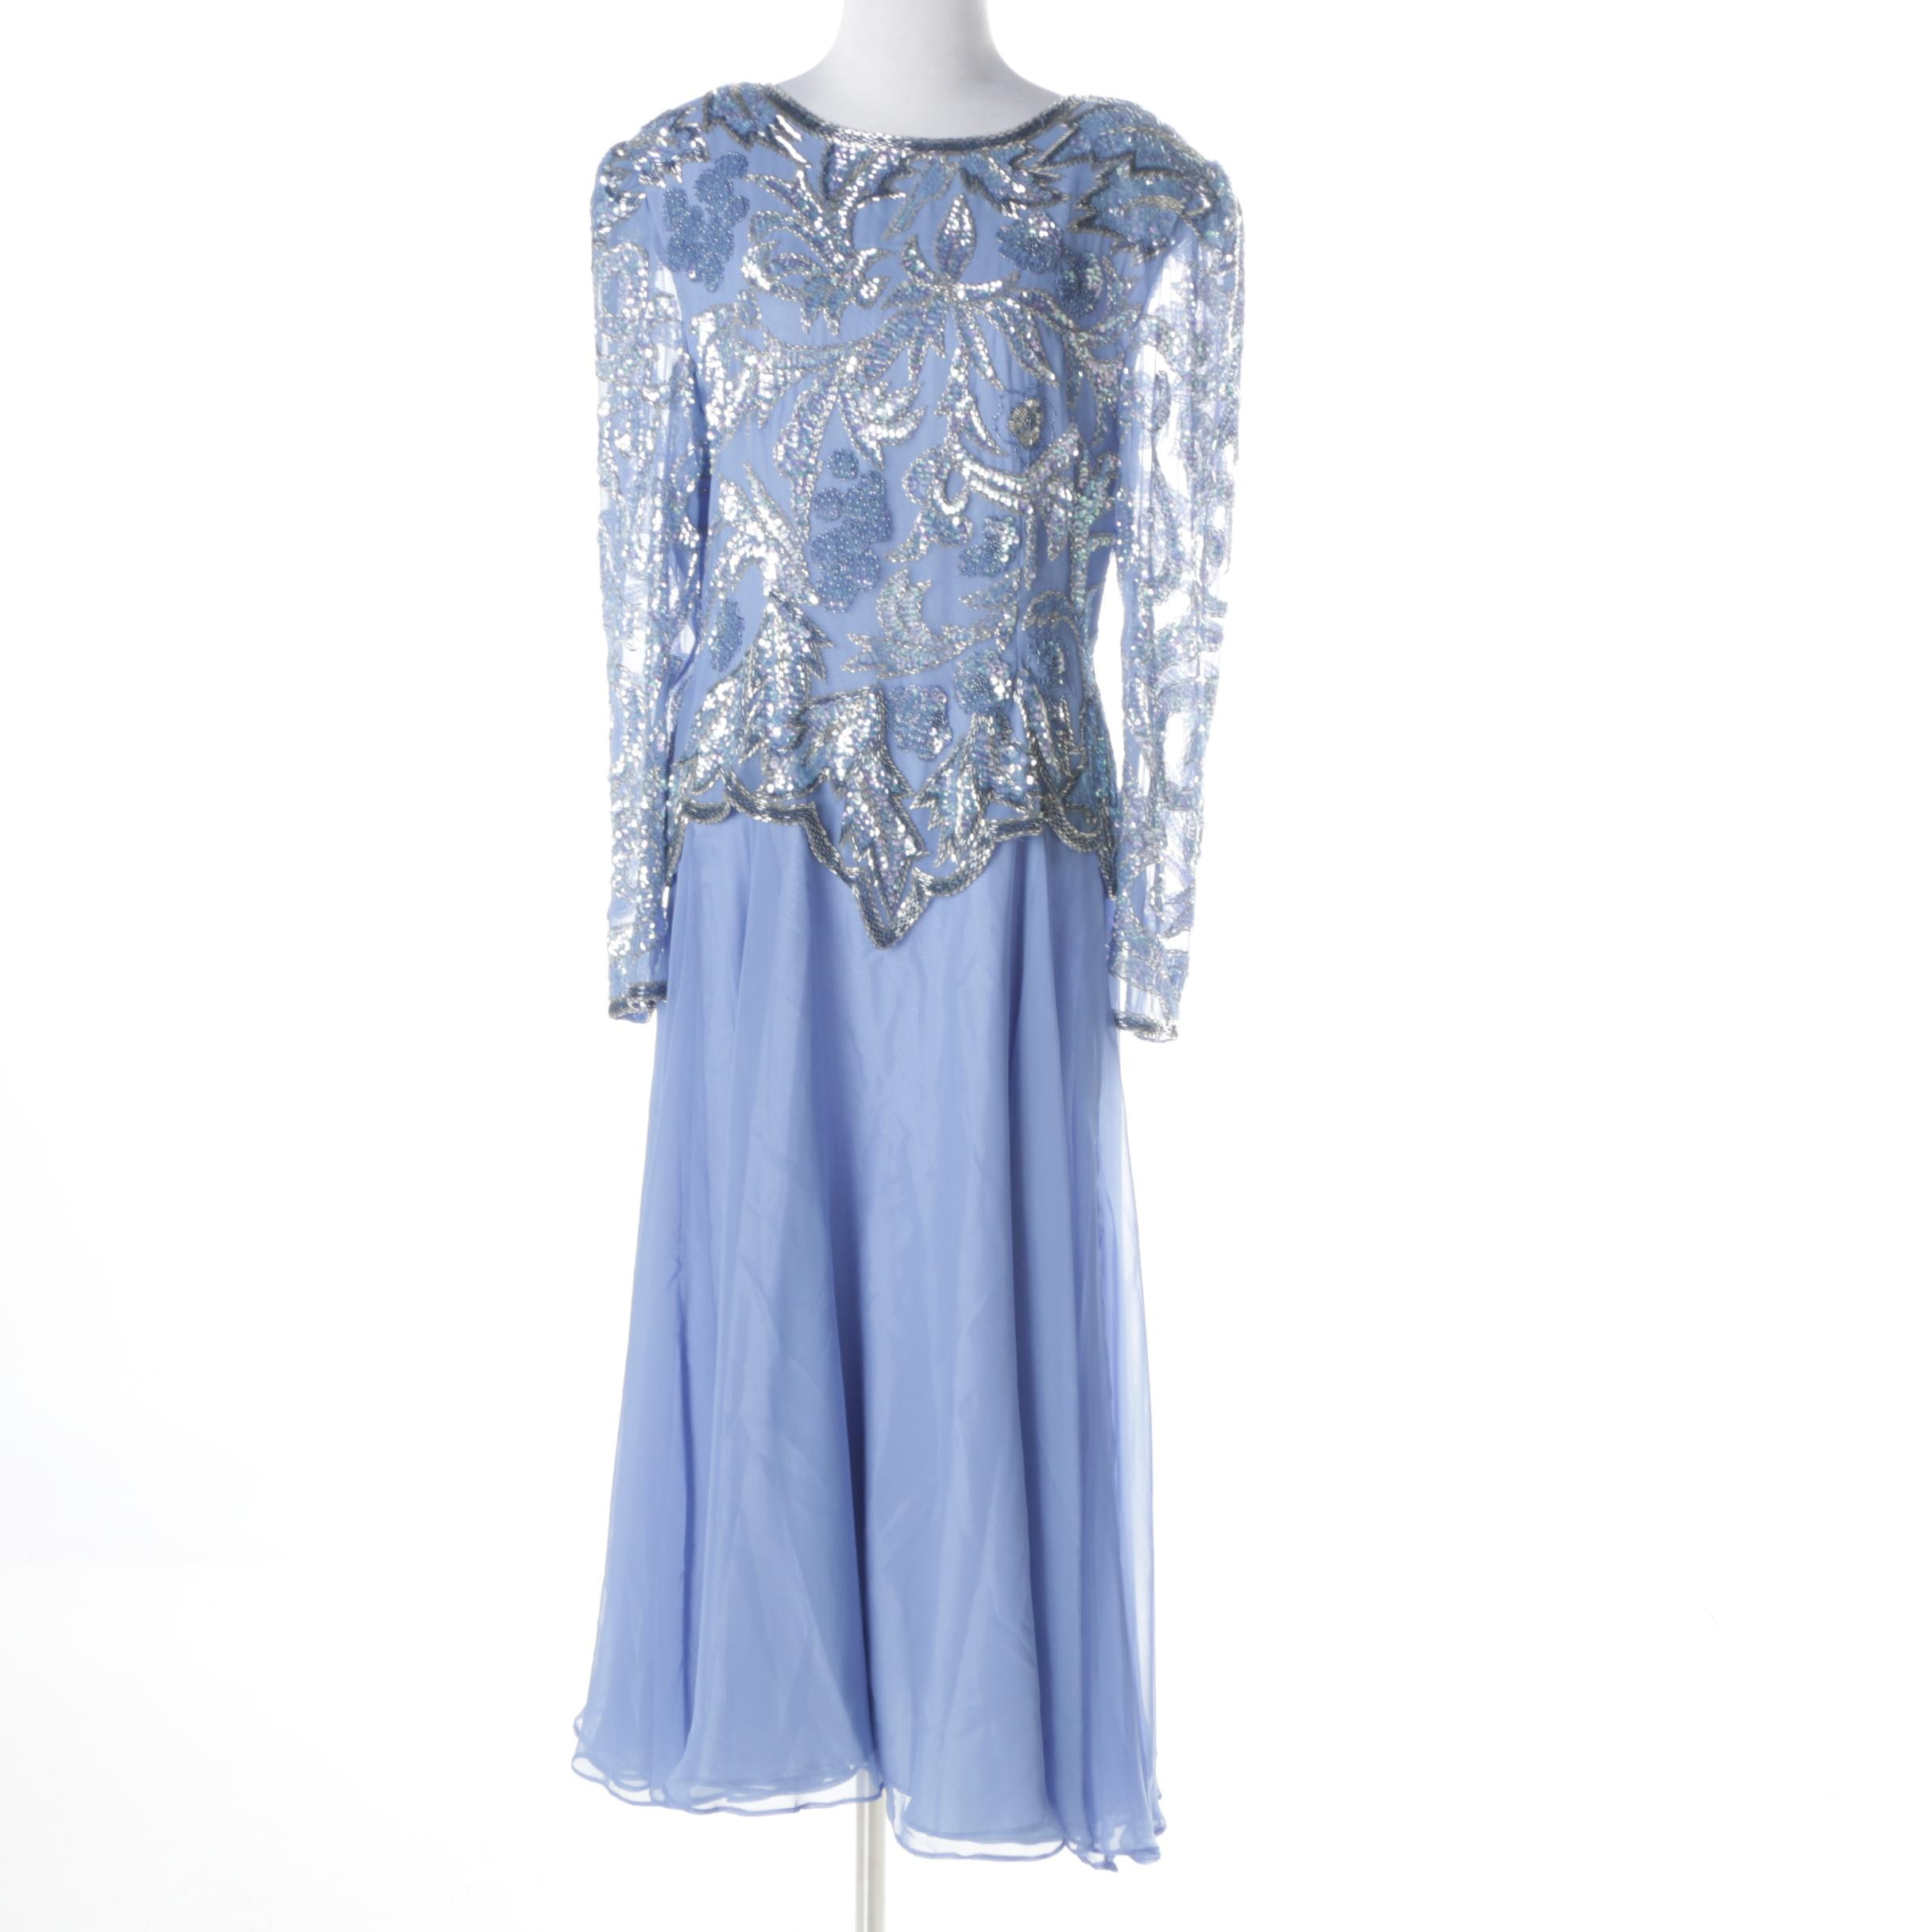 Lillie Rubin Embellished Occasion Dress